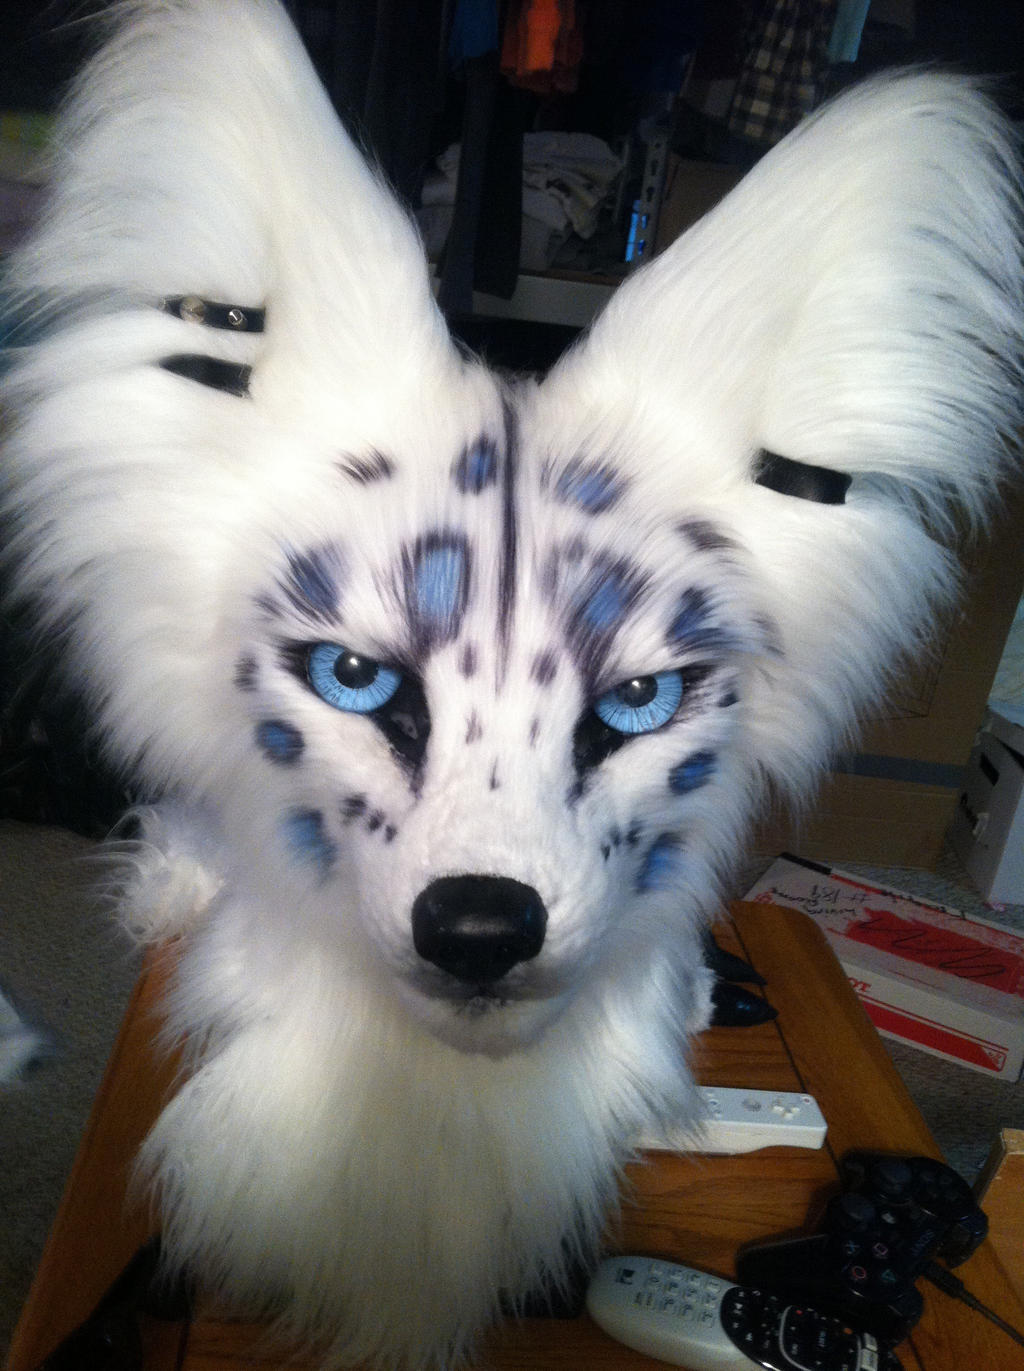 Fursuit markings by wingedwolf94